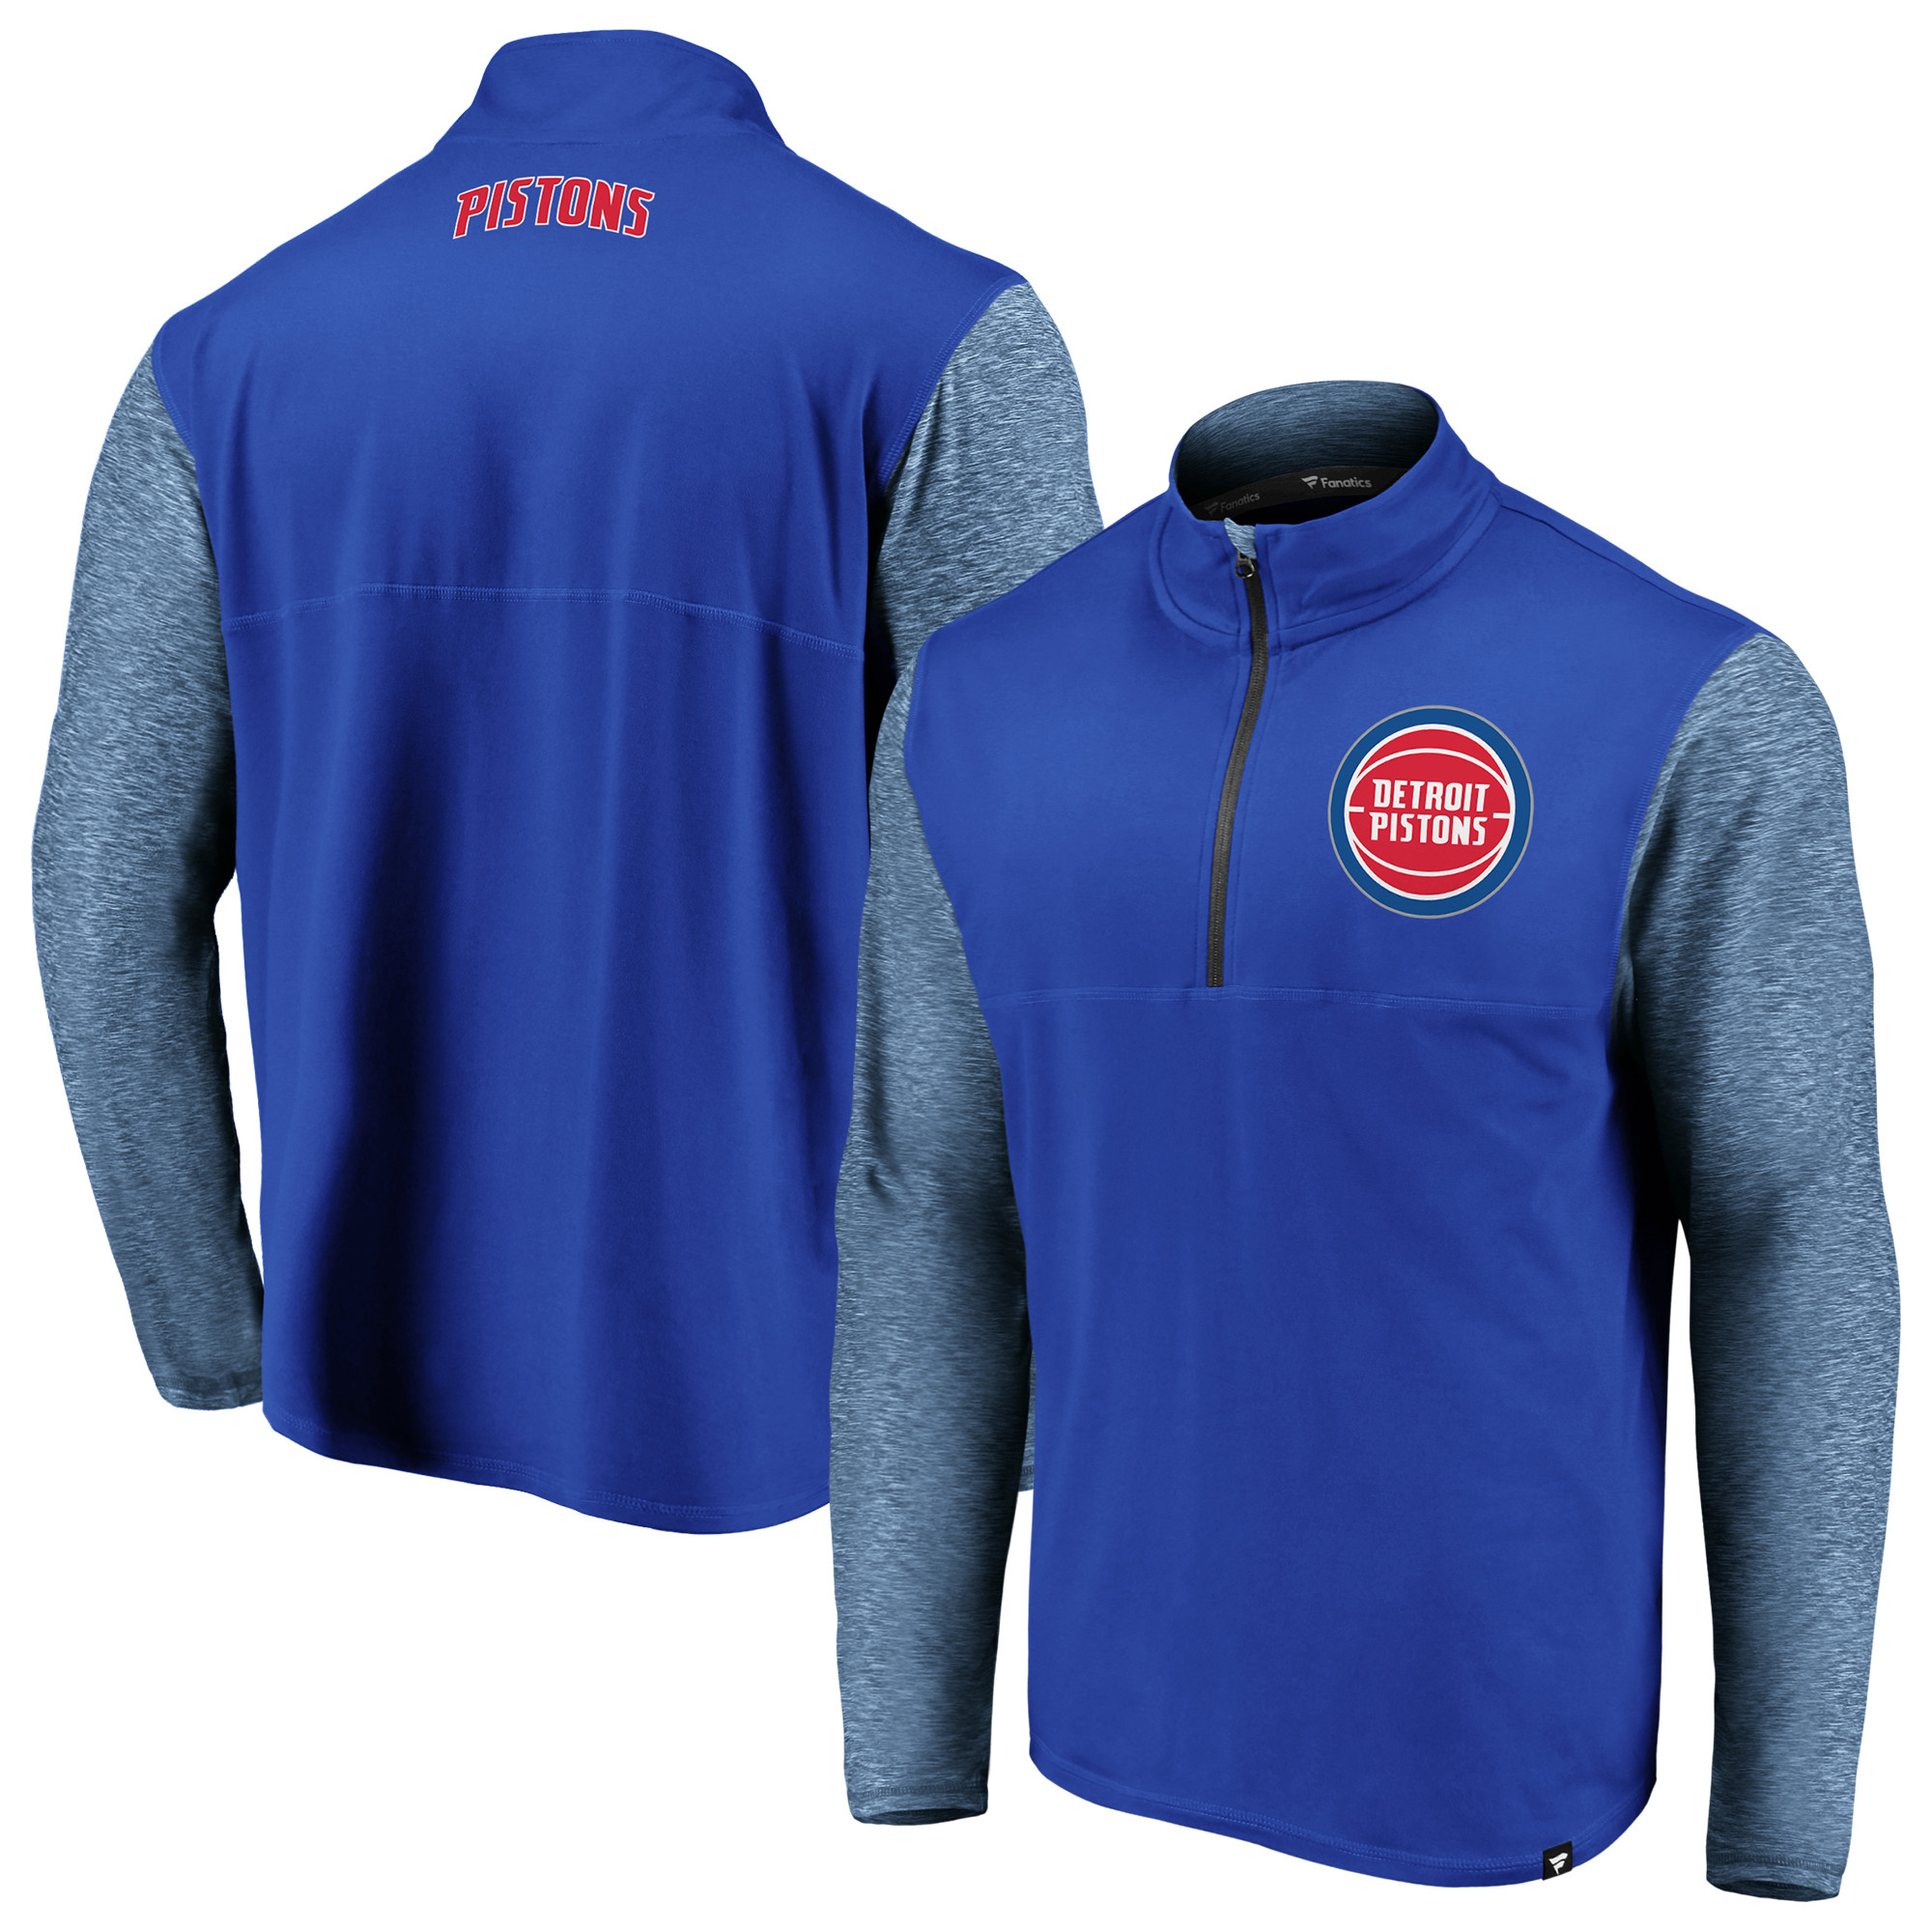 Detroit Pistons Fanatics Branded Made to Move Static Performance Quarter-Zip Pullover Jacket - Blue/Heathered Blue